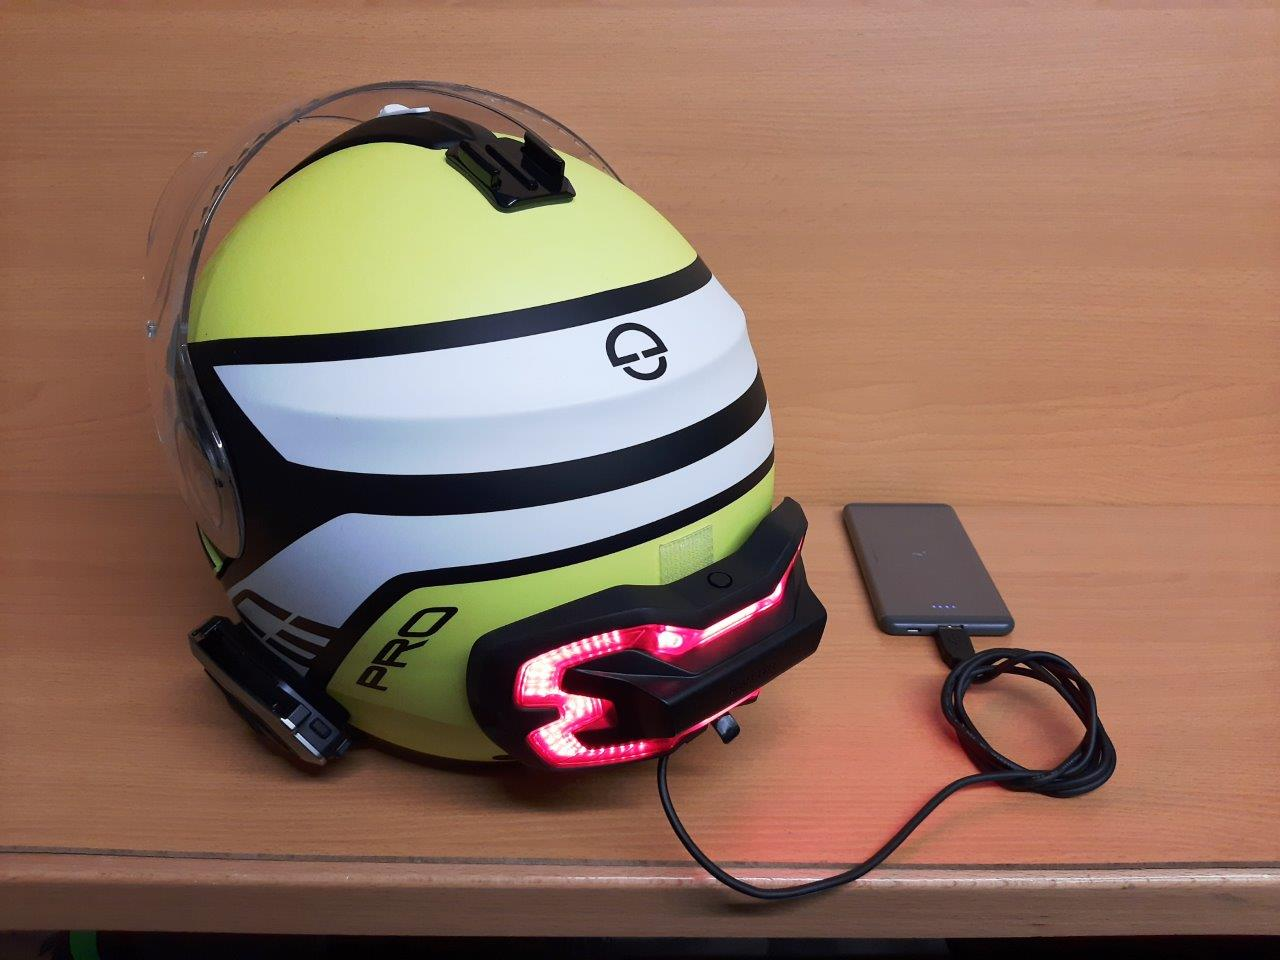 Brake Free Wireless Helmet Light connected to smartphone